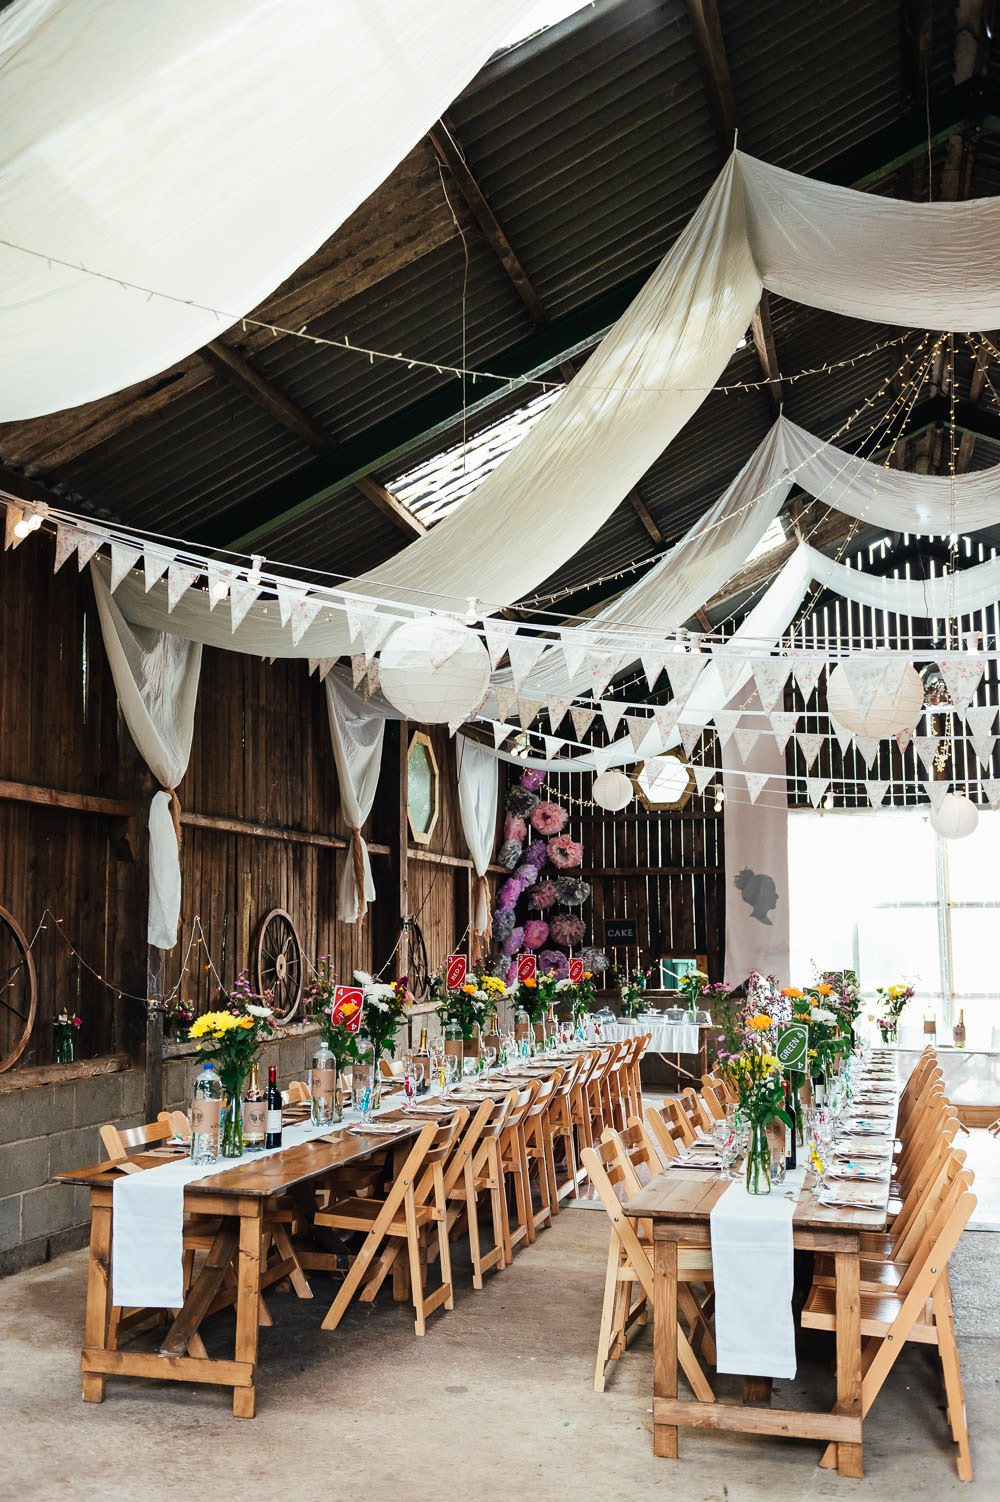 Fabric Drapes Bunting Lanterns Decor Decorations Long Trestle Tables DIY Barn Wedding Jessica Grace Photography